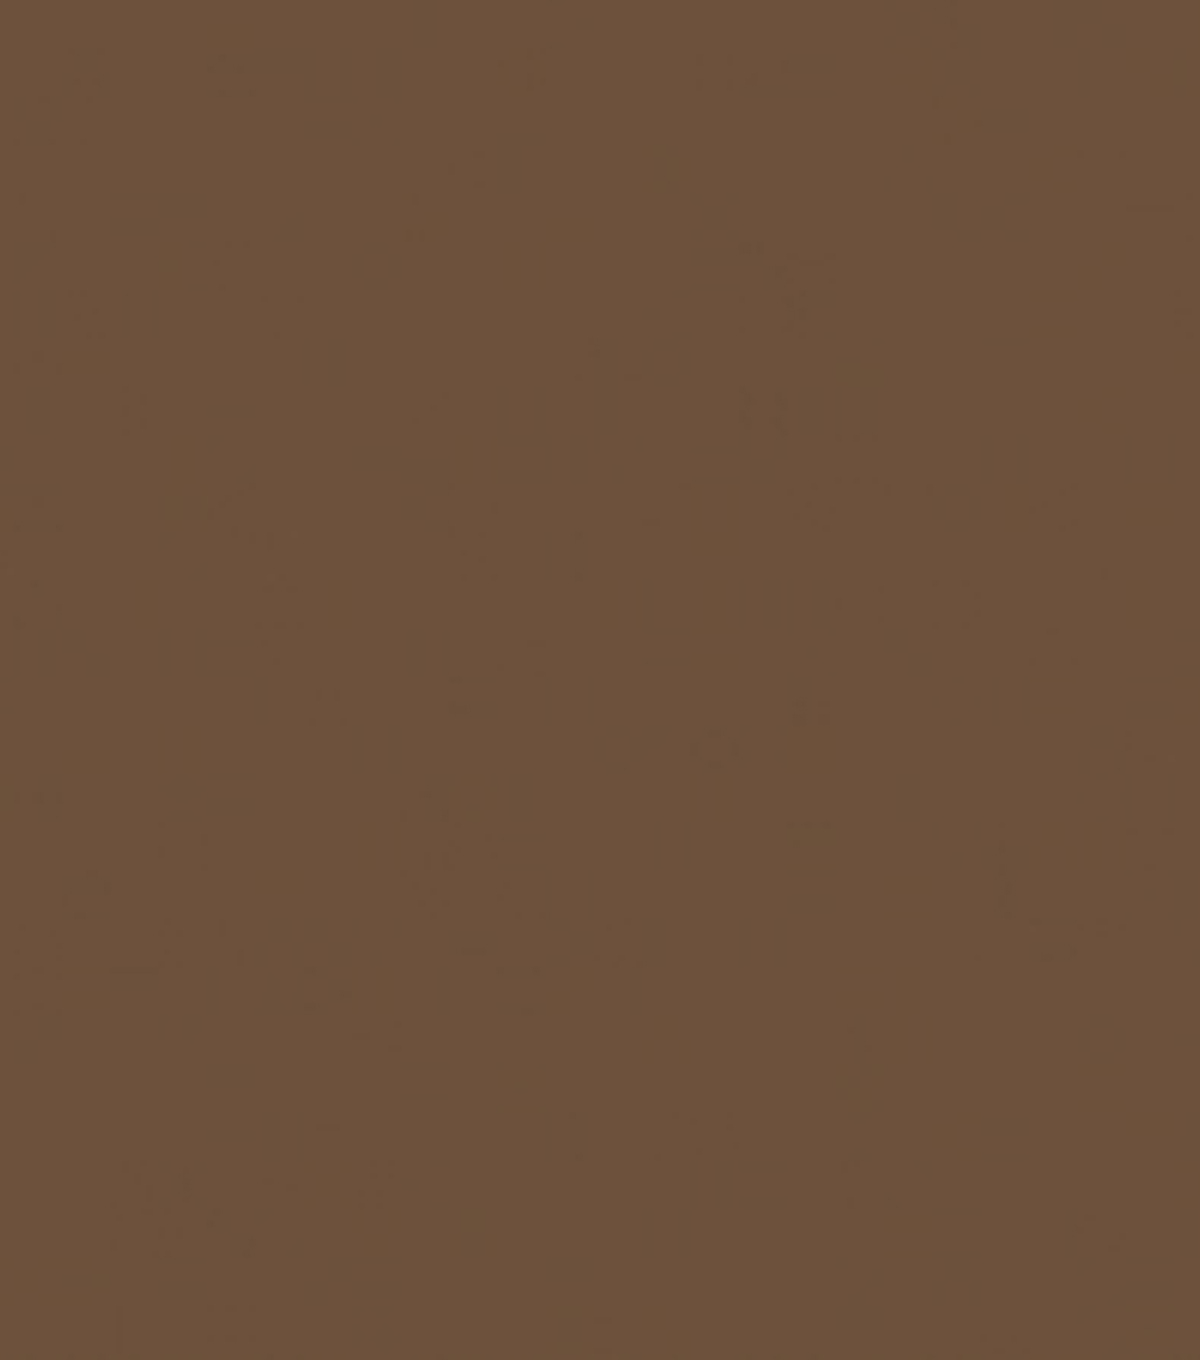 Delta Ceramcoat Acrylic Paint 2 oz, Brown Velvet